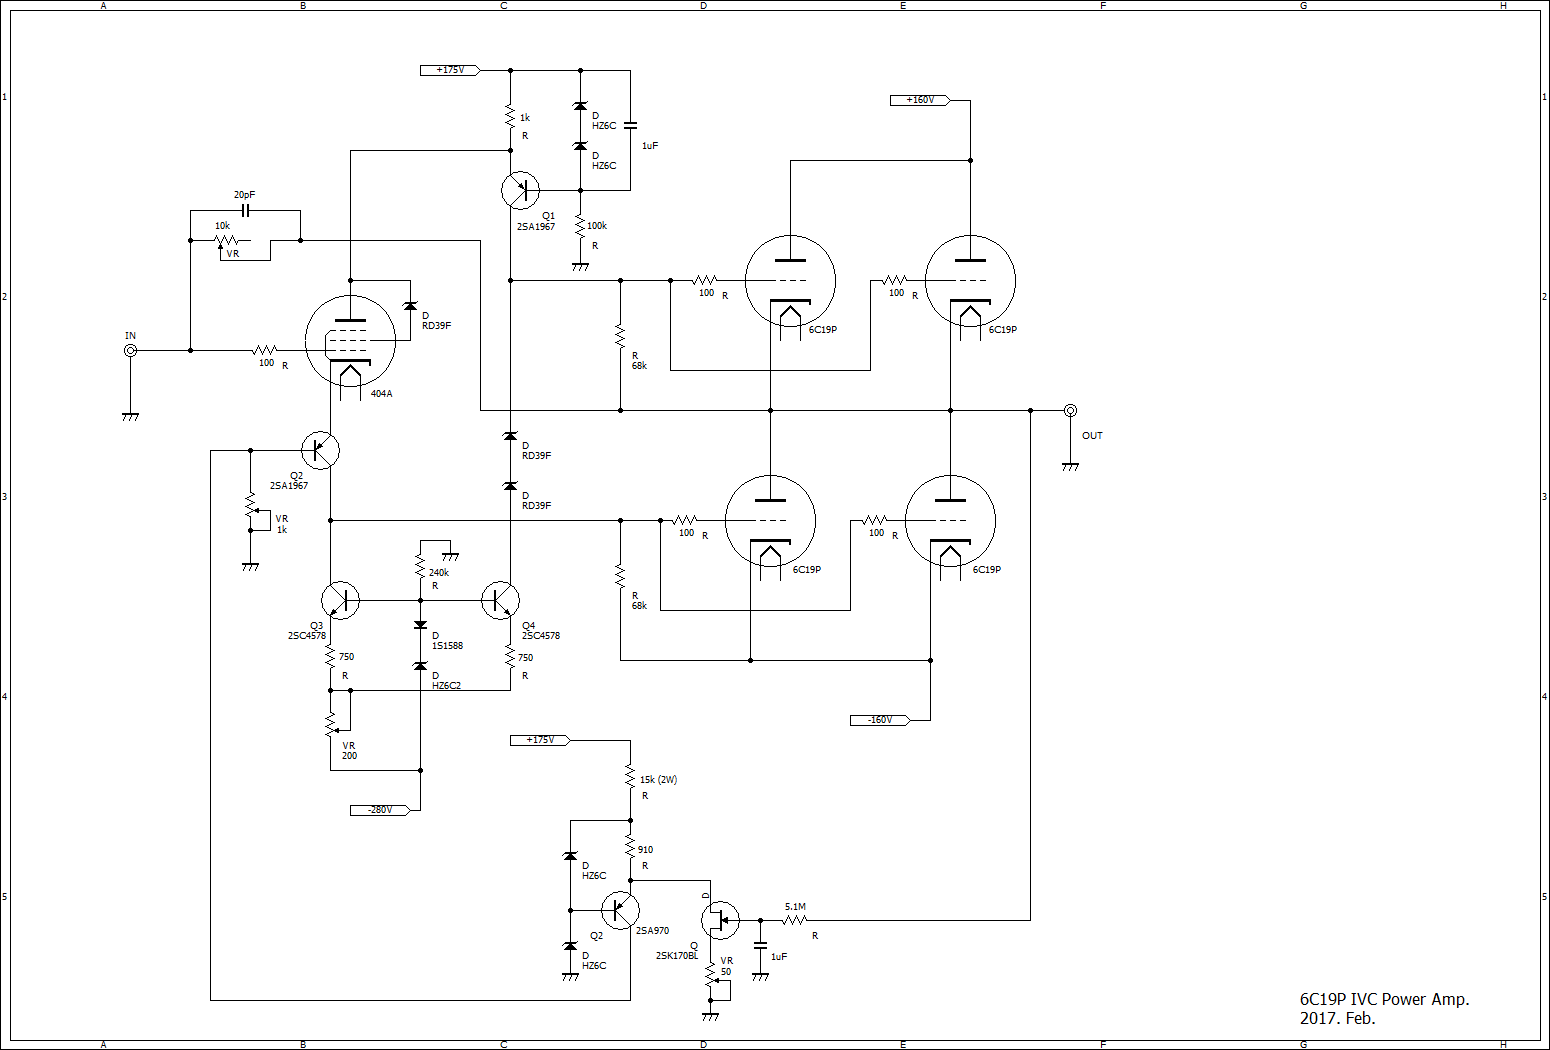 6C19PIVCpower Quad Schematic on electronic circuits, metal detector, guitar pedal, high voltage, tube guitar amp, block diagram, power supply circuits,